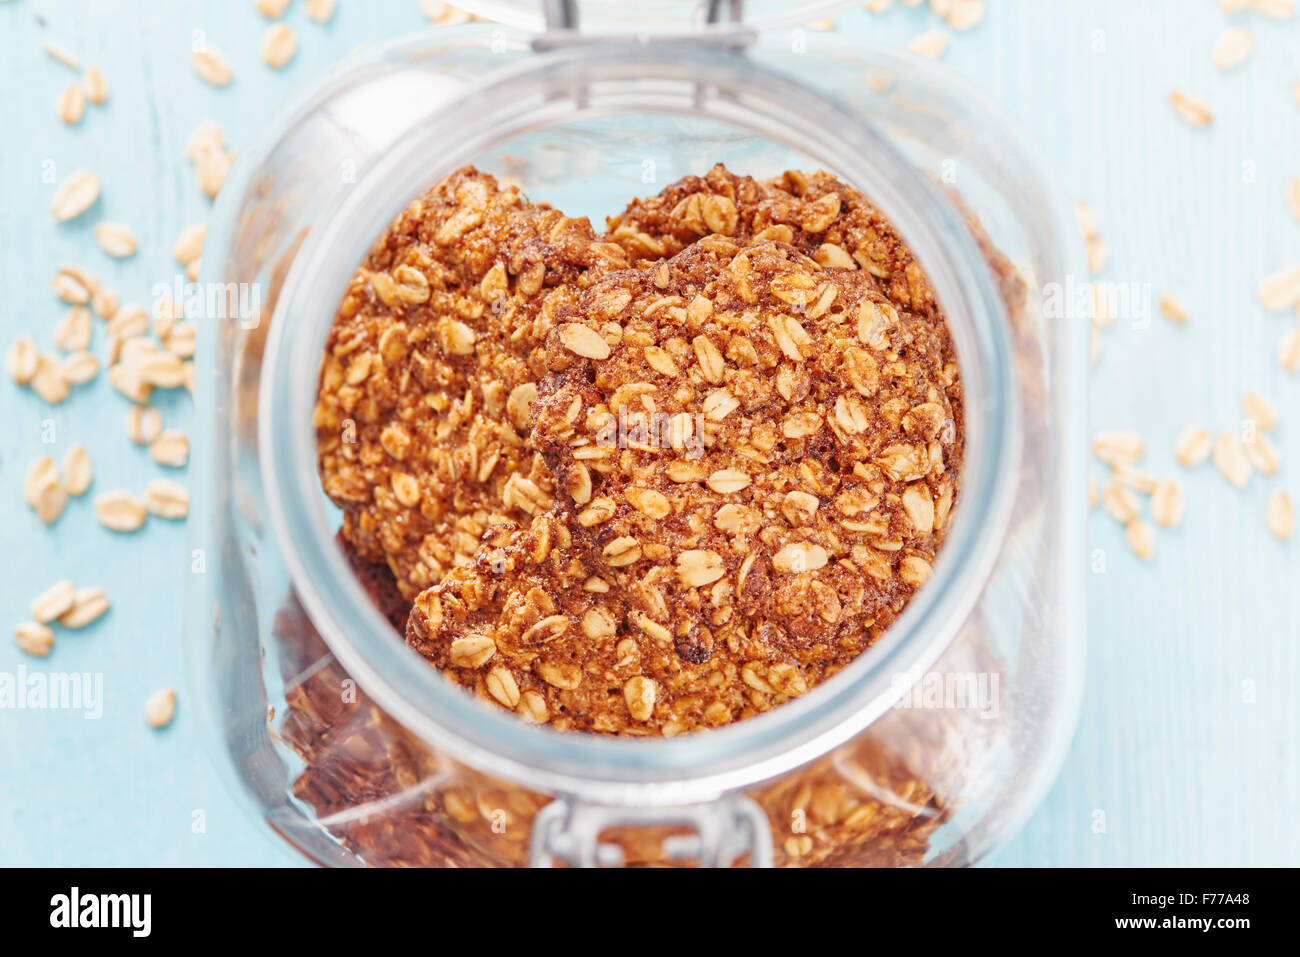 Homemade oatmeal banana cookies in the jar surrounded by oatmeal on blu wooden table - Stock Image